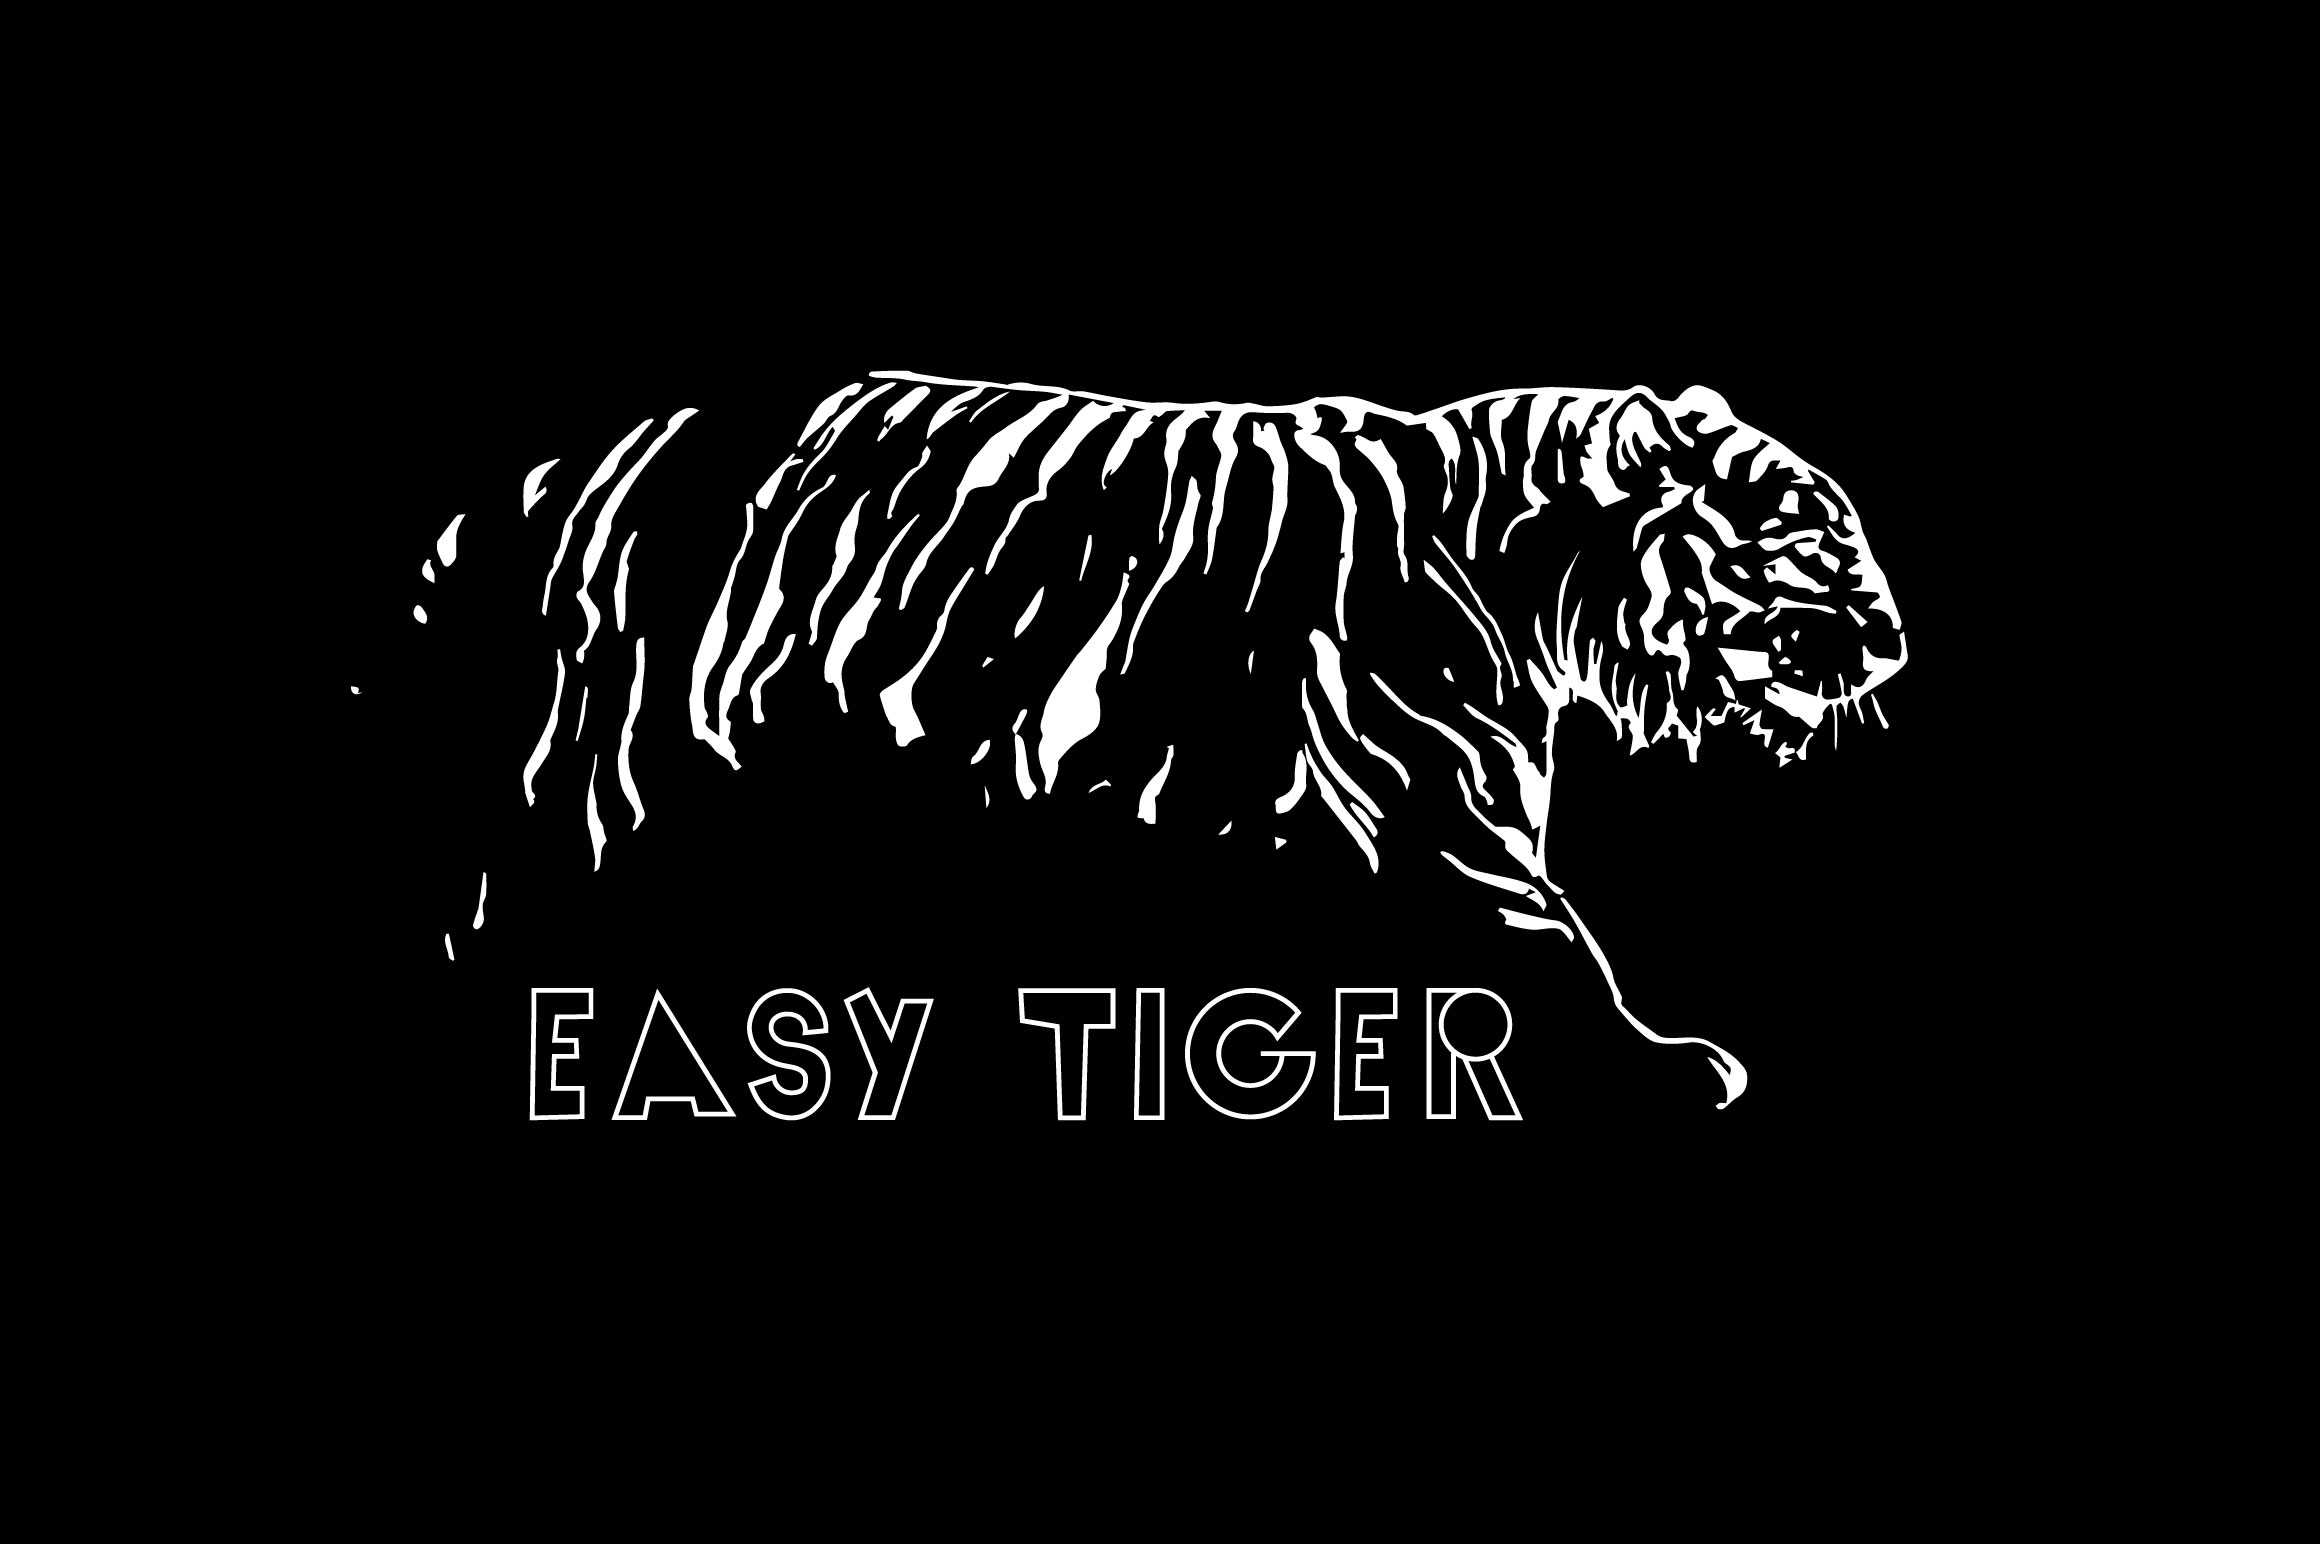 Easy Tiger | Outline and Black example image 4